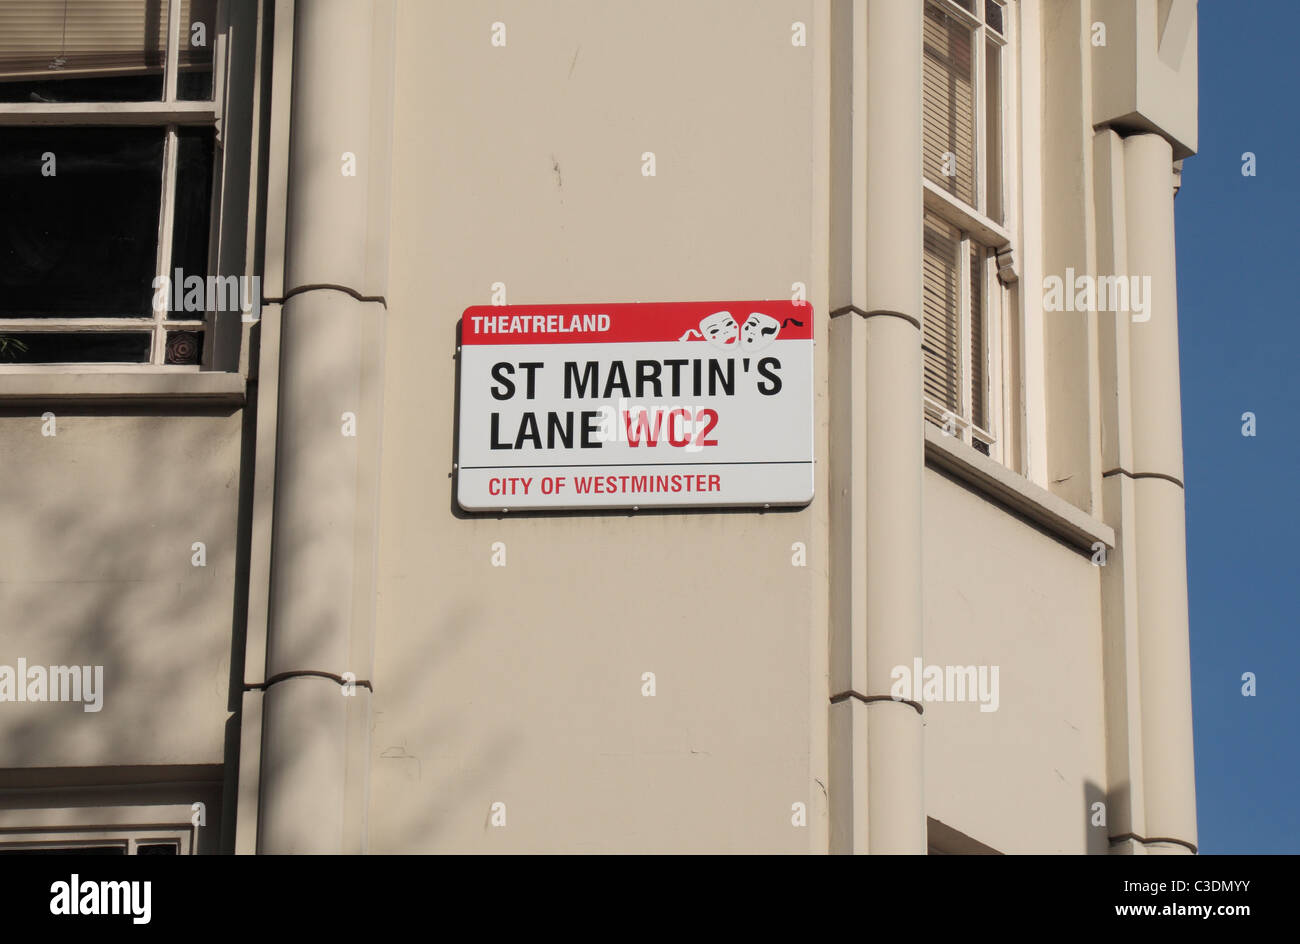 Theatreland street sign for St Martin's Lane, London, WC2, UK - Stock Image